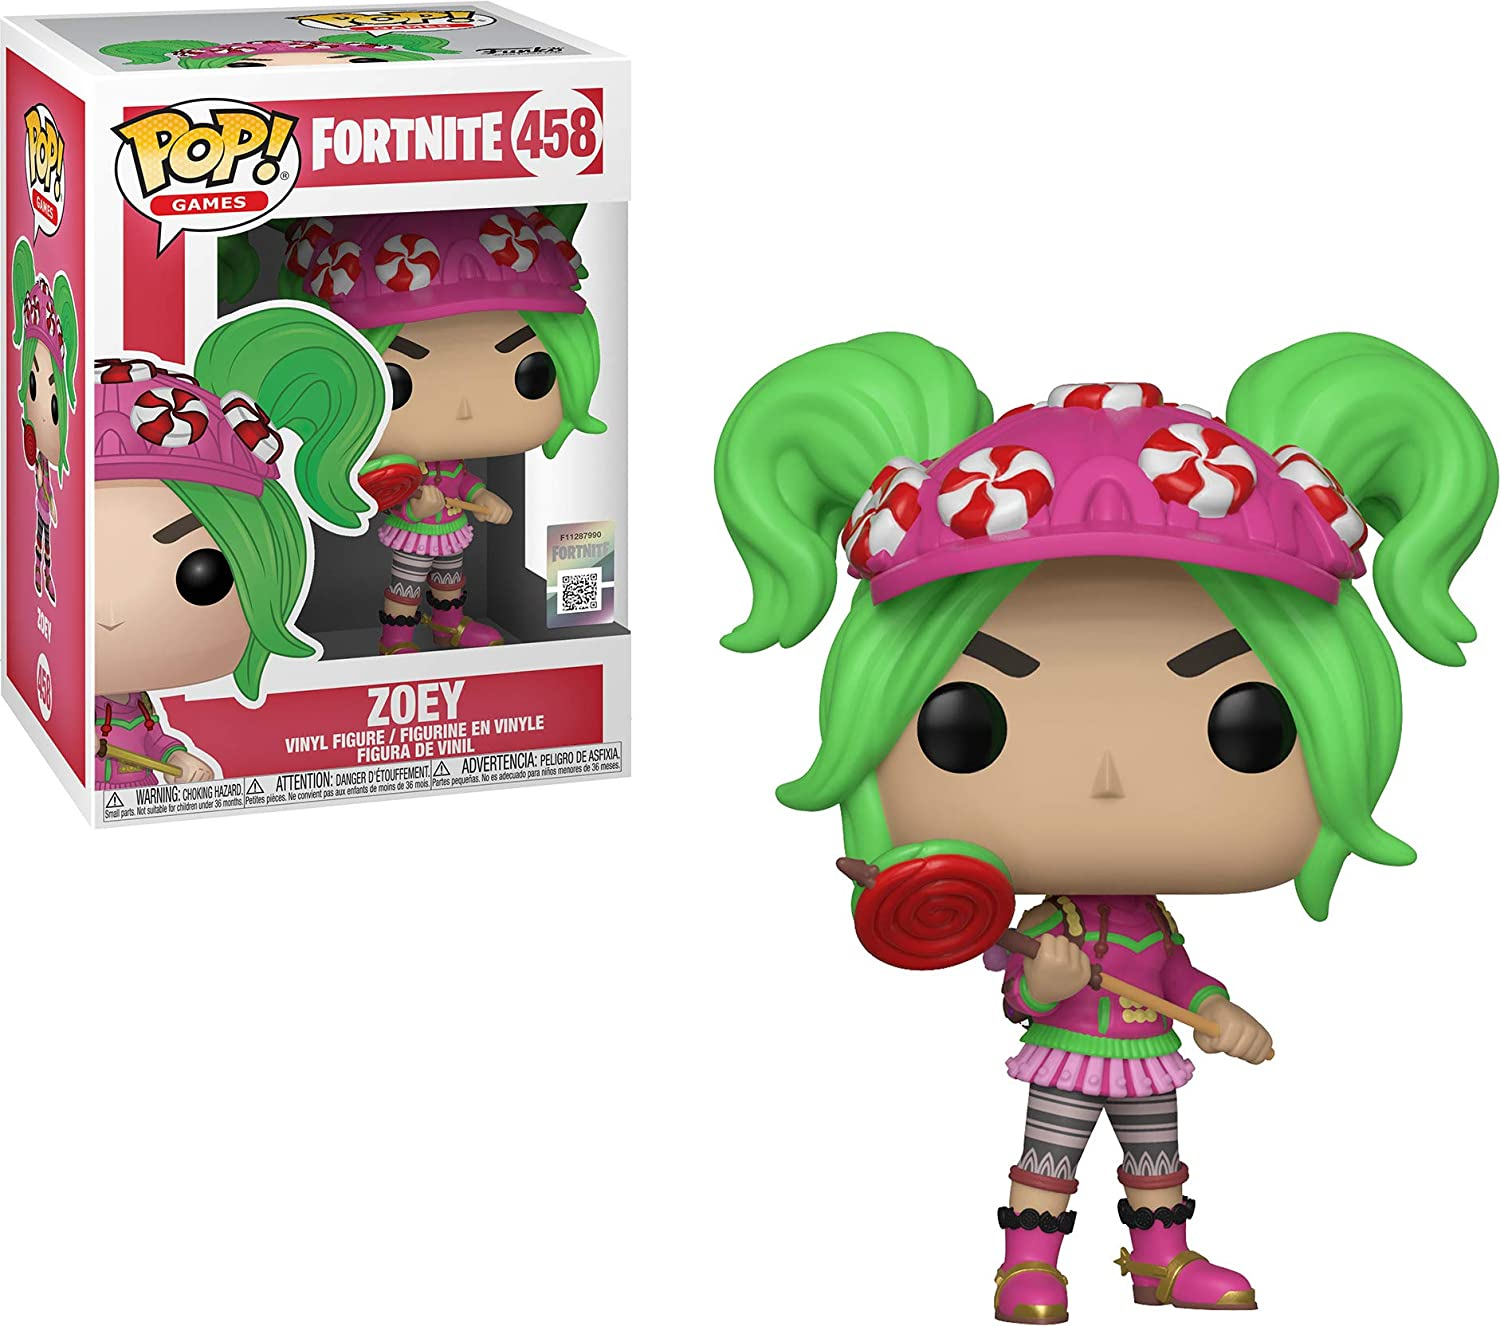 Funko Figura Pop Fortnite: Zoey, Multicolor, Talla única (36019)